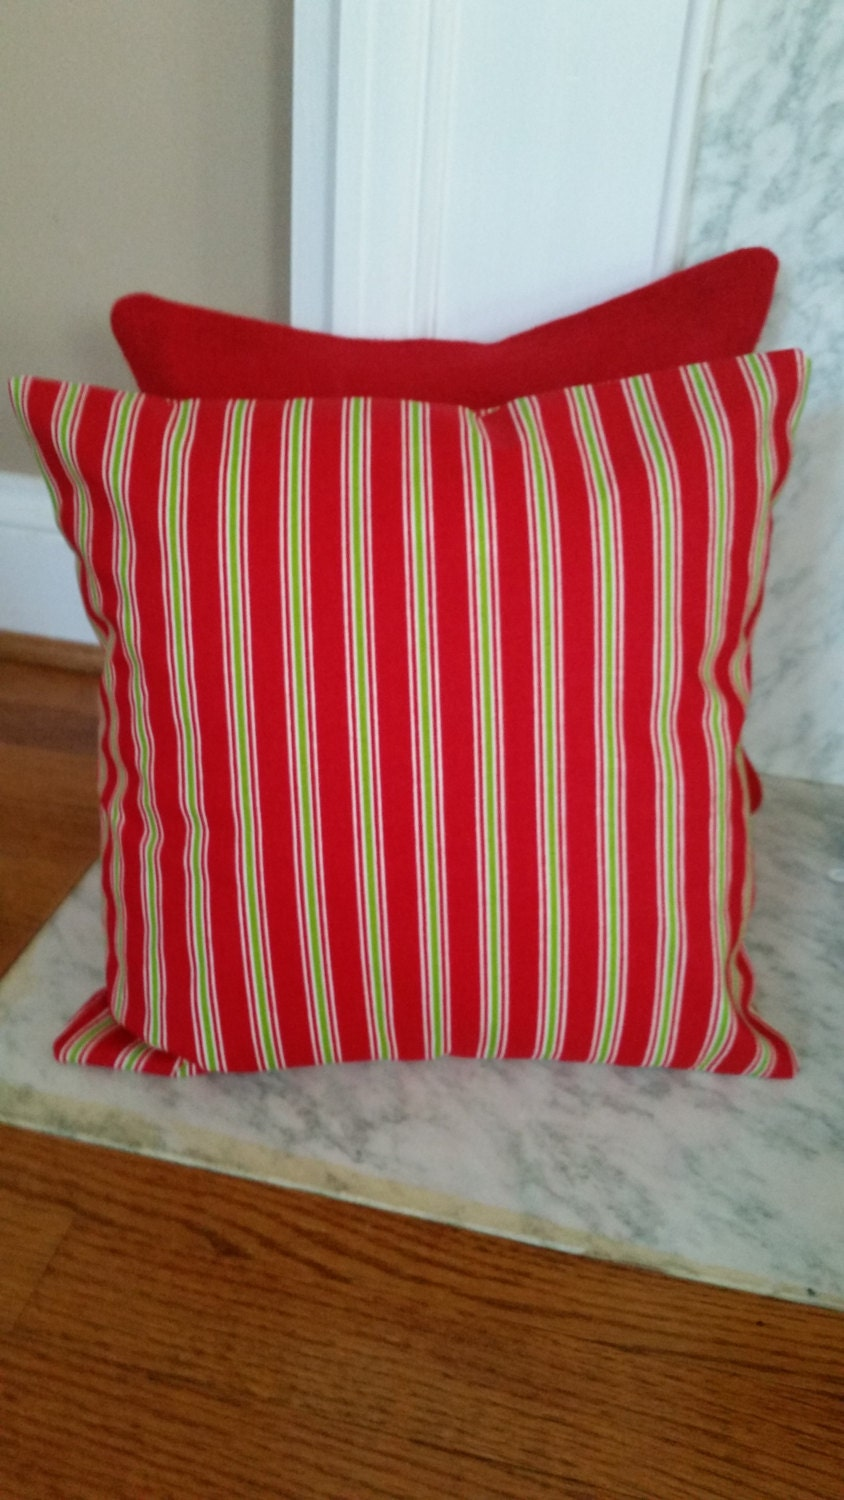 Pillow Cover with Velcro Closure Red with Chartreuse and